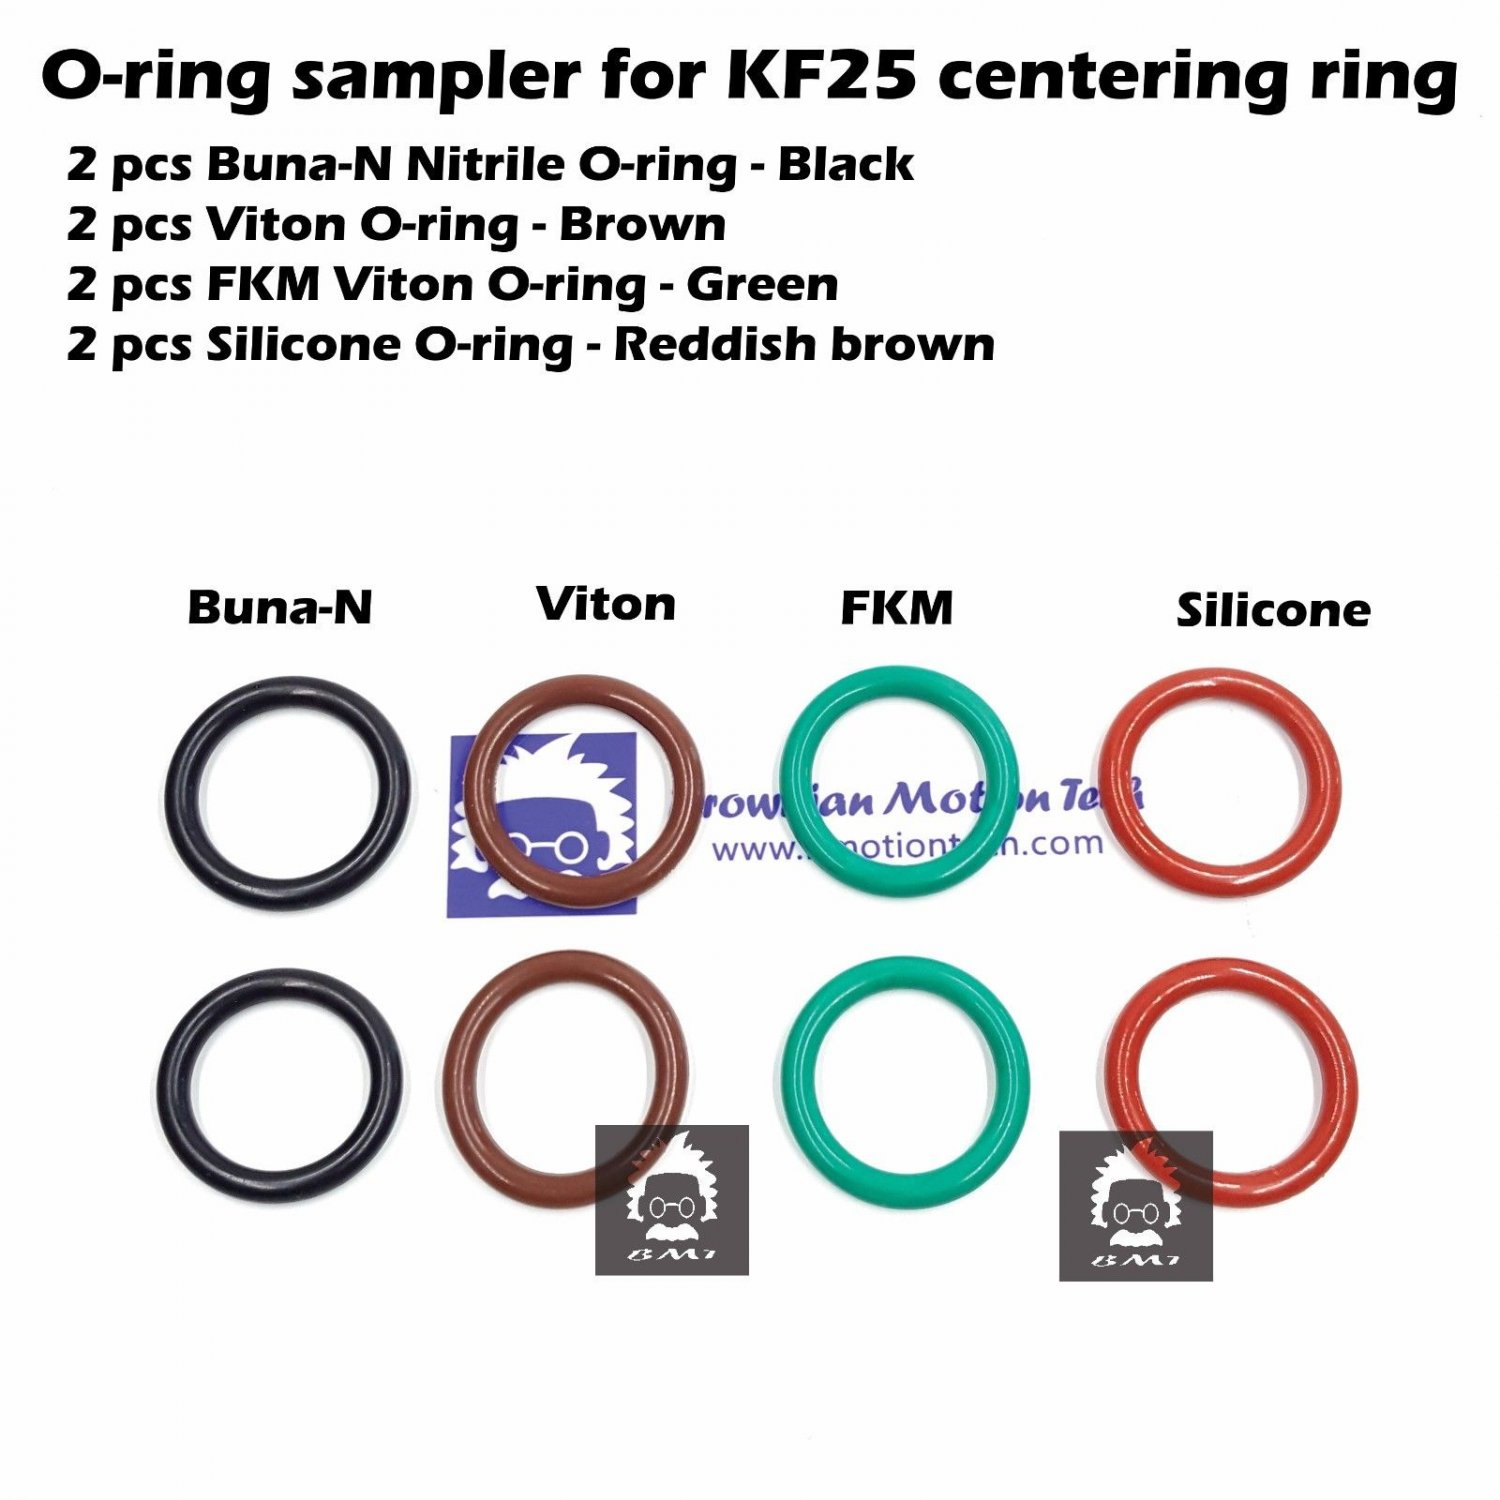 O-ring sampler for KF25 flange centering ring Buna Viton FKM Silicone 2 of each